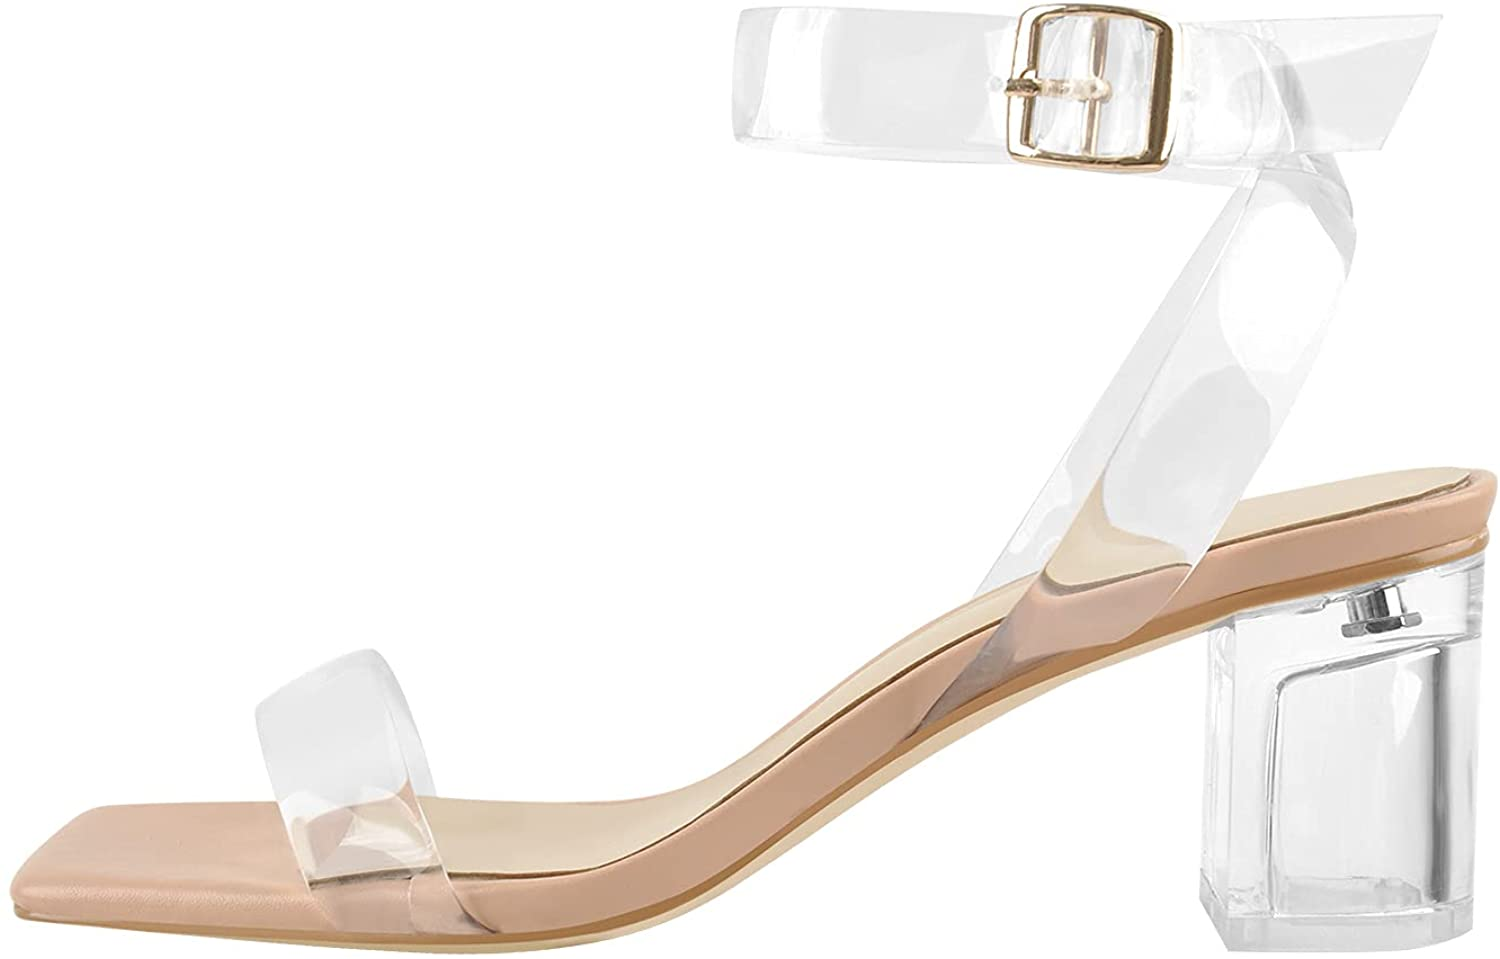 PINOKISS Women's Square Open Toe Buckle High Heel Clear Sandals